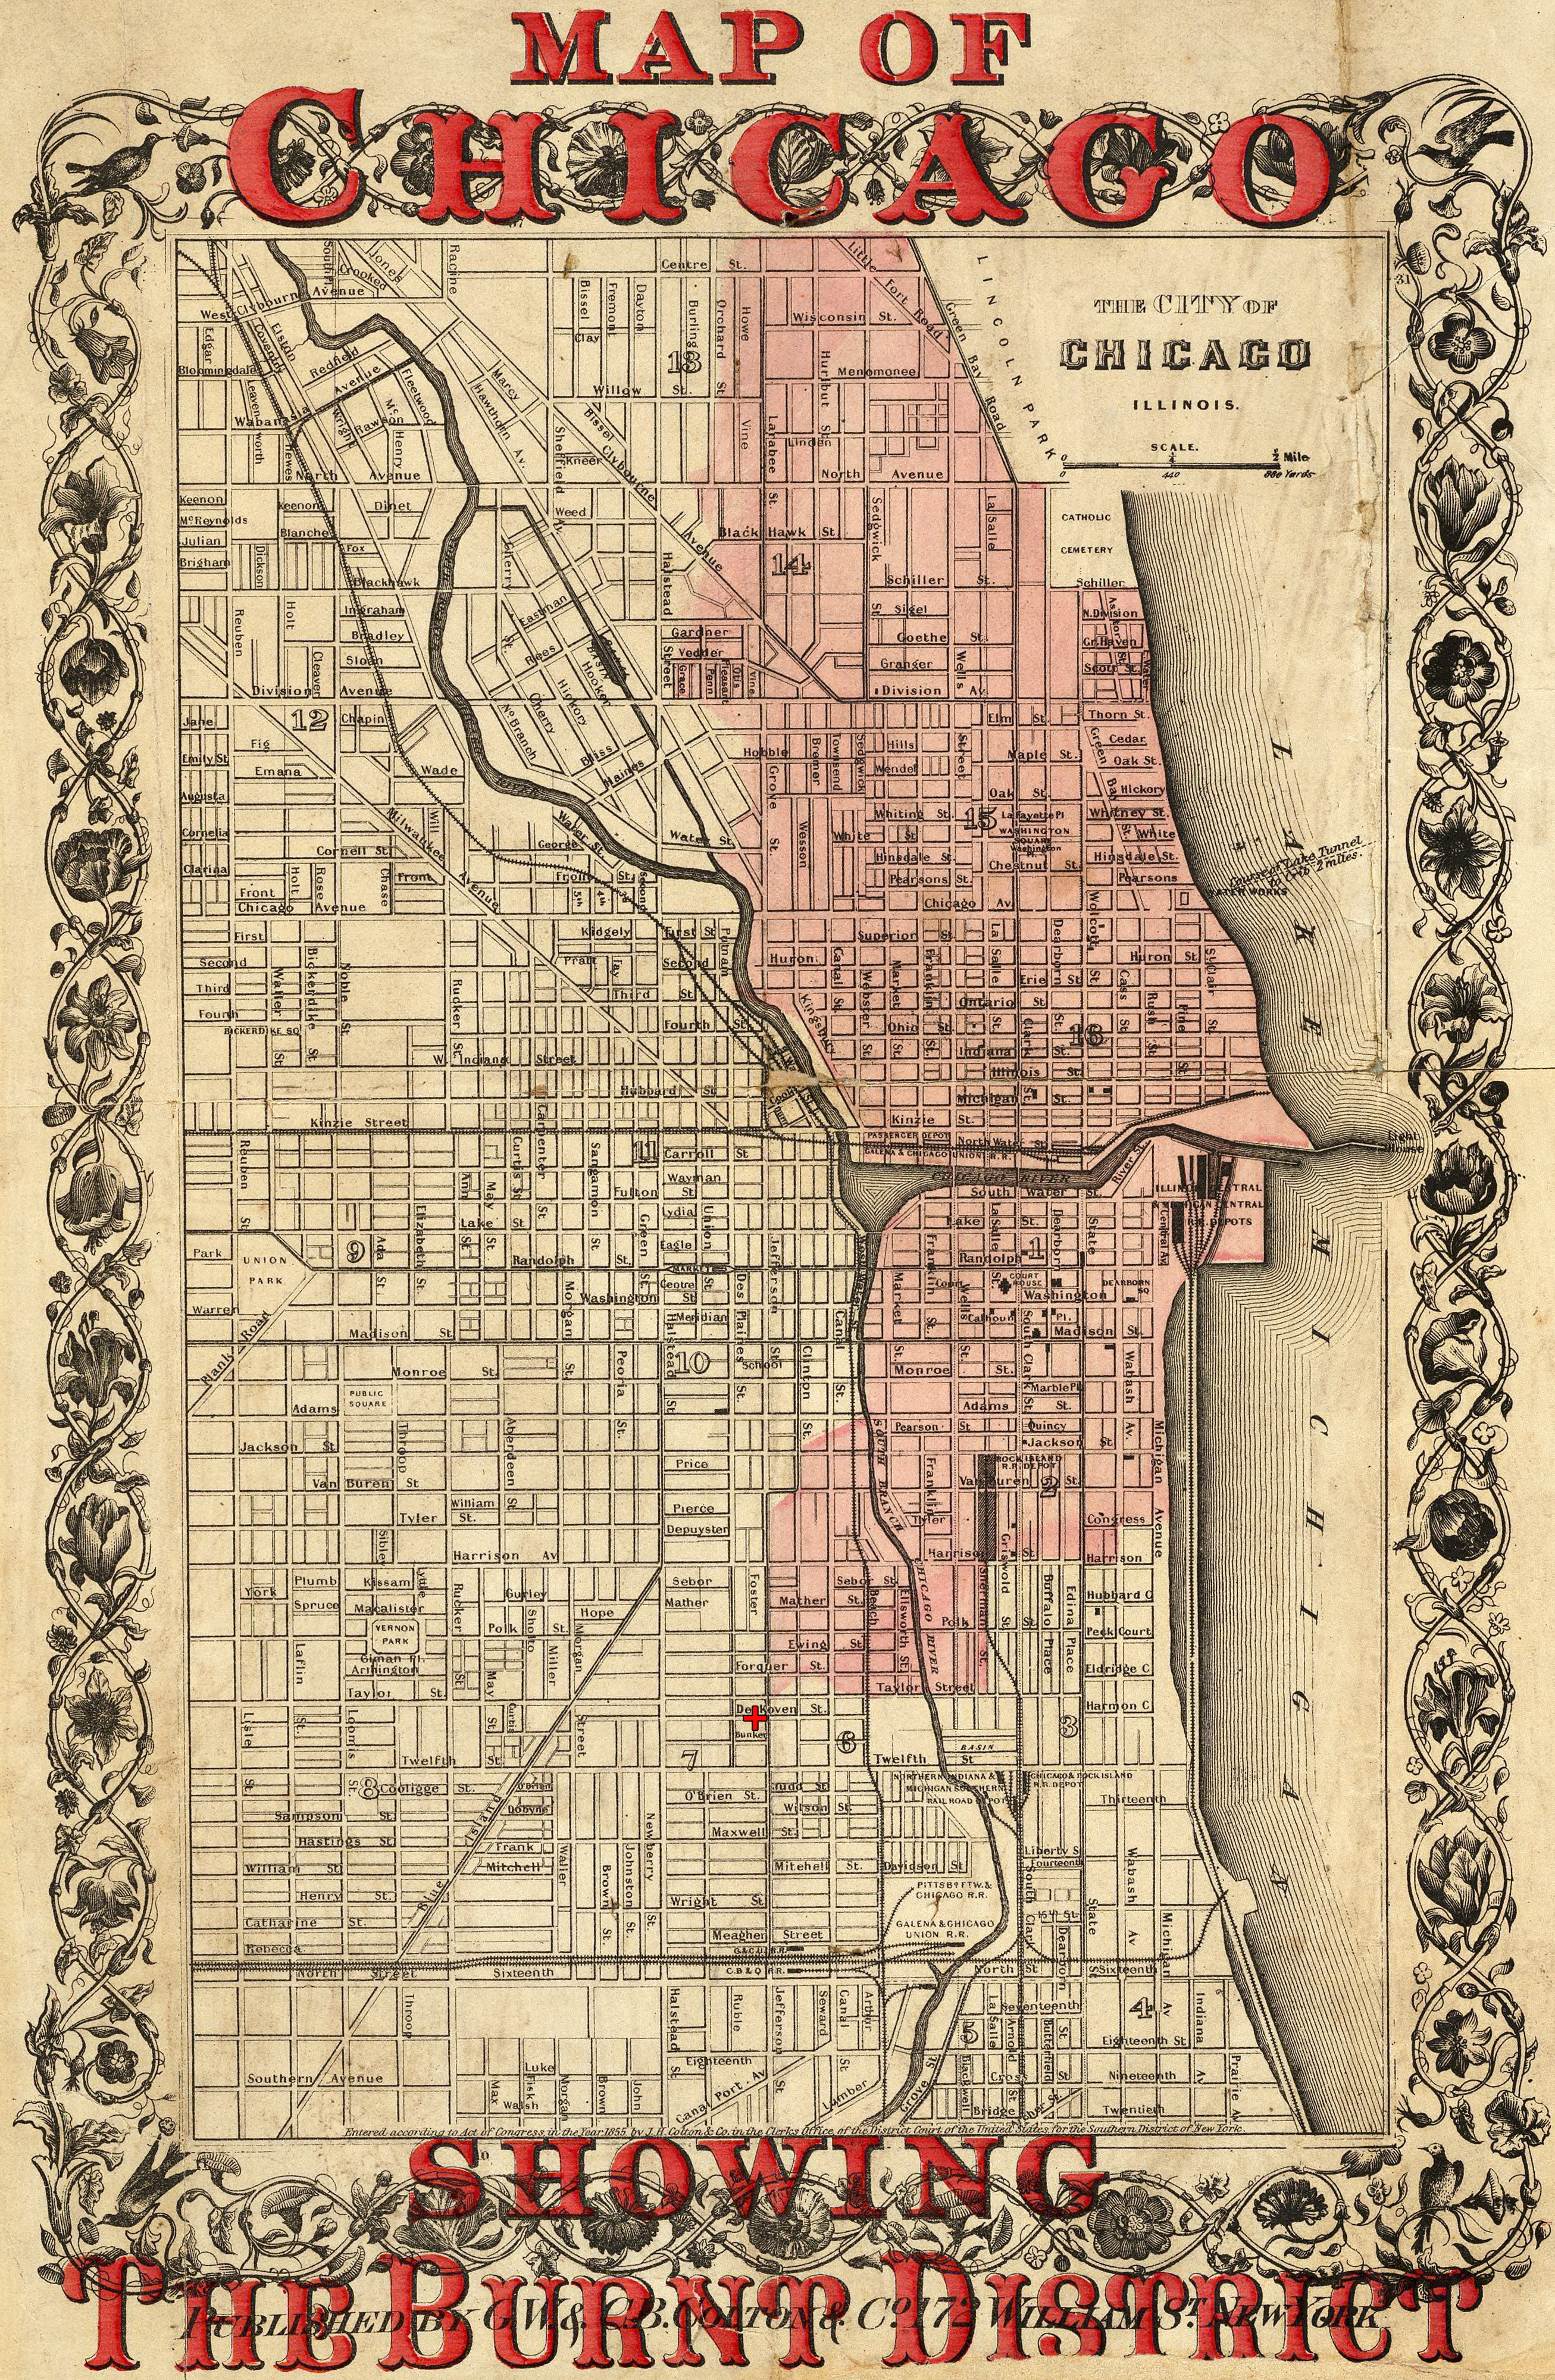 The Great Chicago Fire - 1869 Map of Chicago, Showing the Burned Area From the Great Chicago Fire (1871)